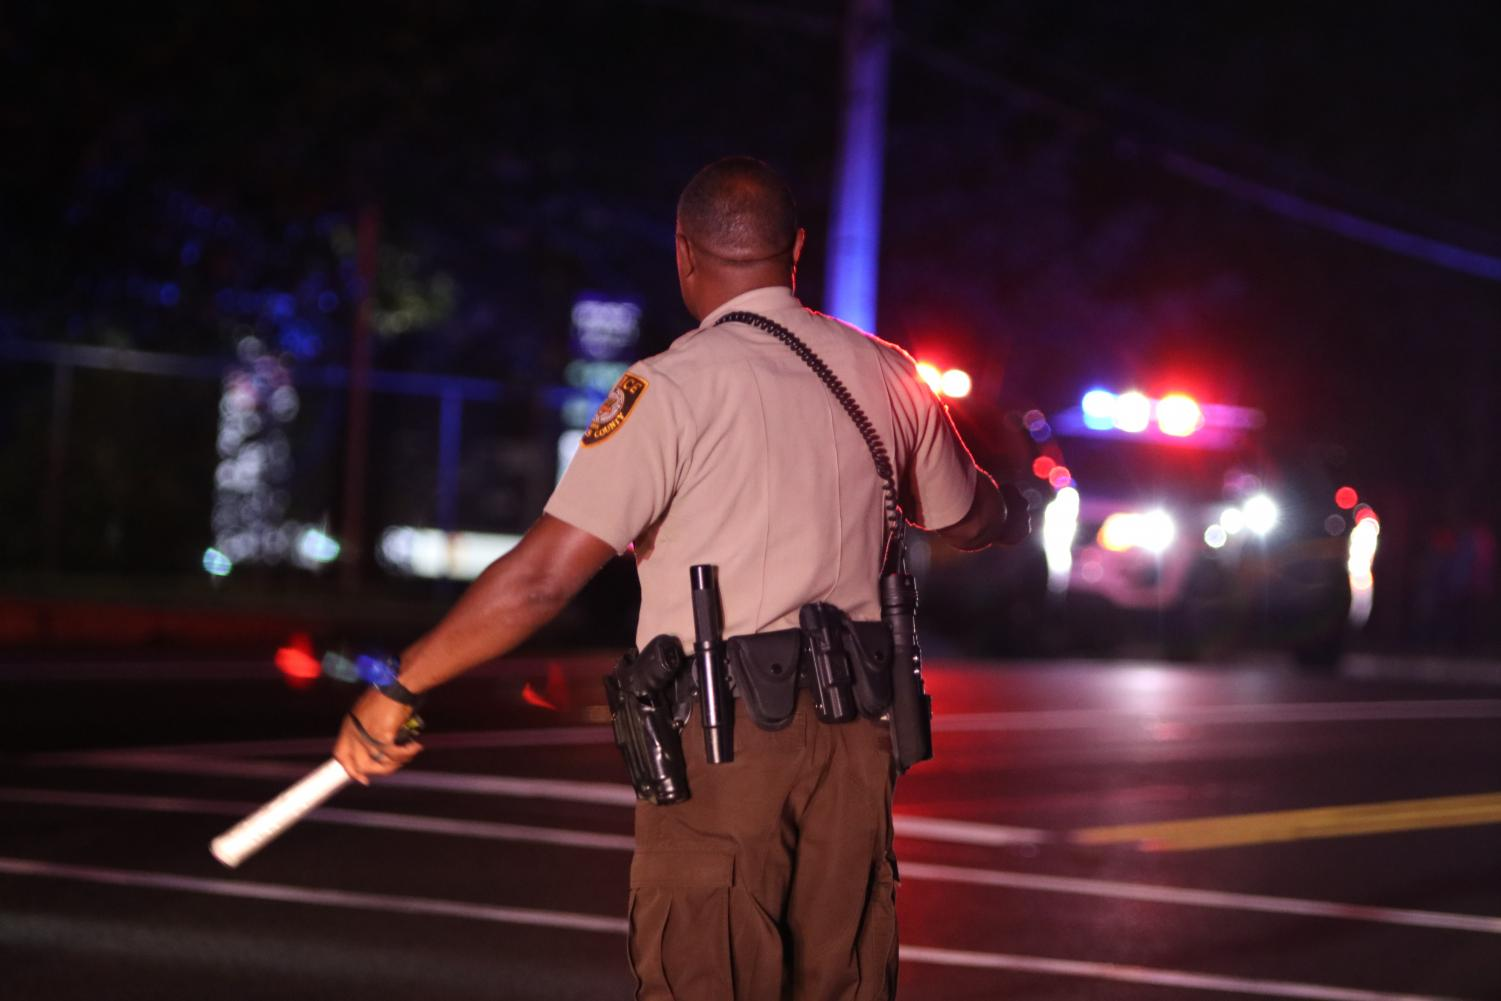 A St. Louis County police officer directs traffic after a shot was fired on Aug. 23 at Parkway North.